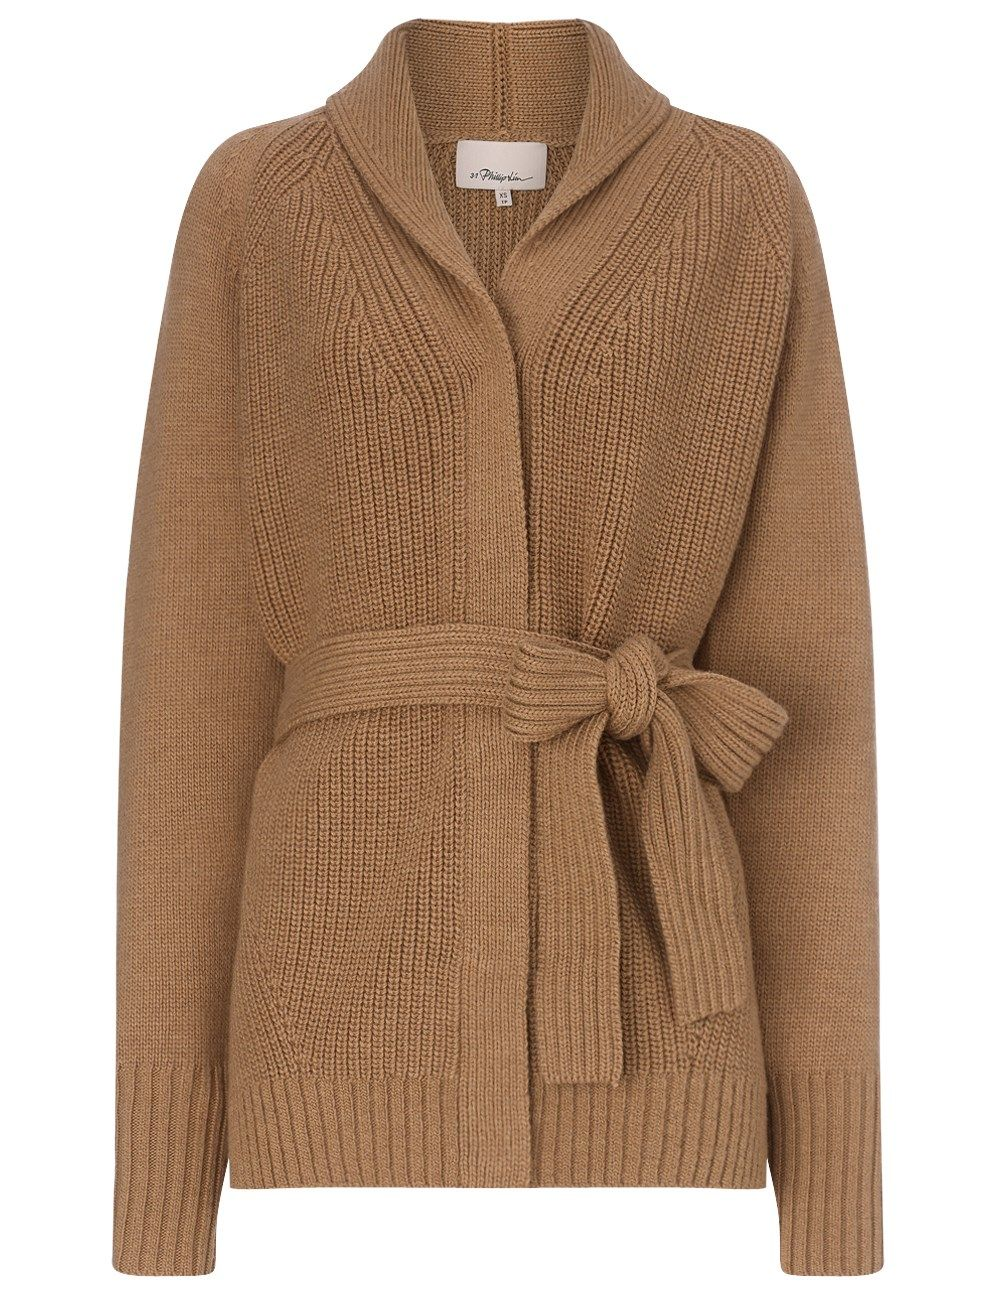 https://www.trunkclub.com/my/invite/NRPBXL Camel Wool Oversized ...